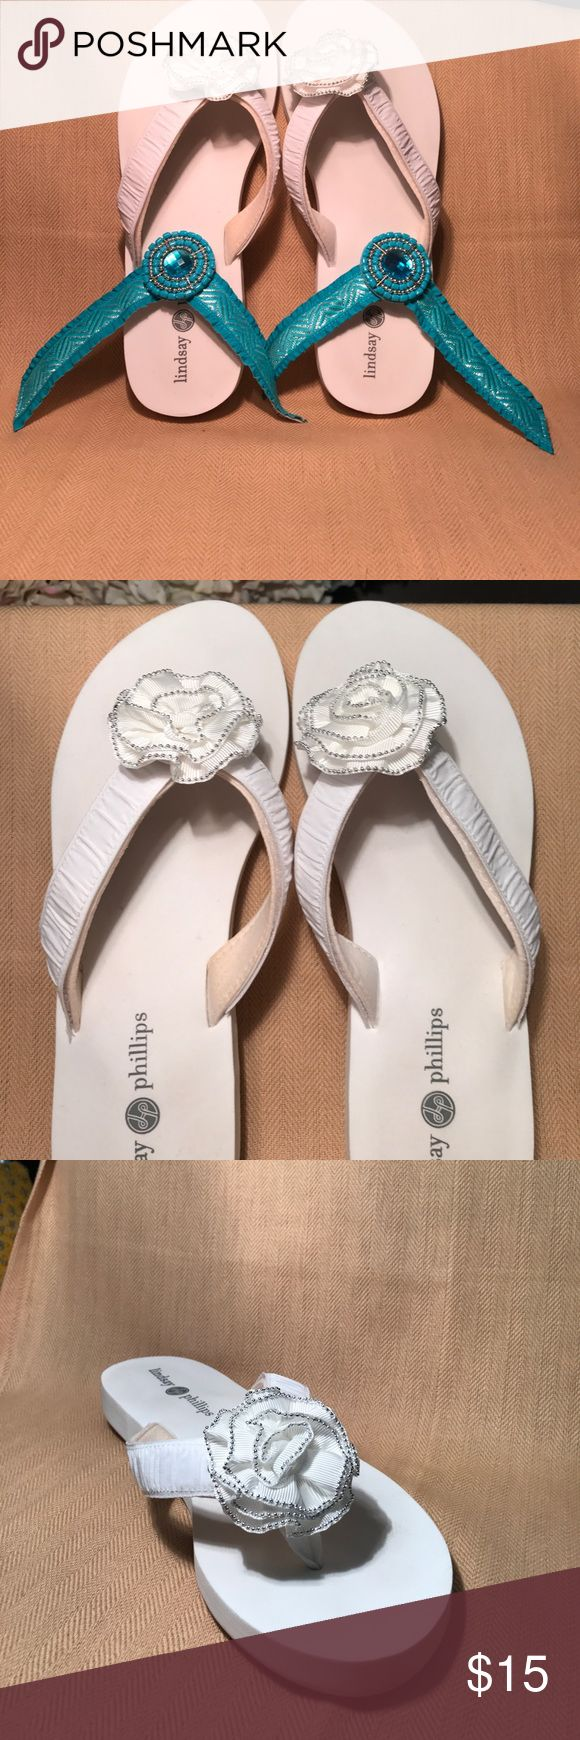 White Lindsay Phillips switch Flops The Flip Flops are from Lindsay Phillips and come with 2 sets of switchable straps. They have only been worn a few times but are in good condition and comfortable. Lindsay Phillips Shoes Sandals